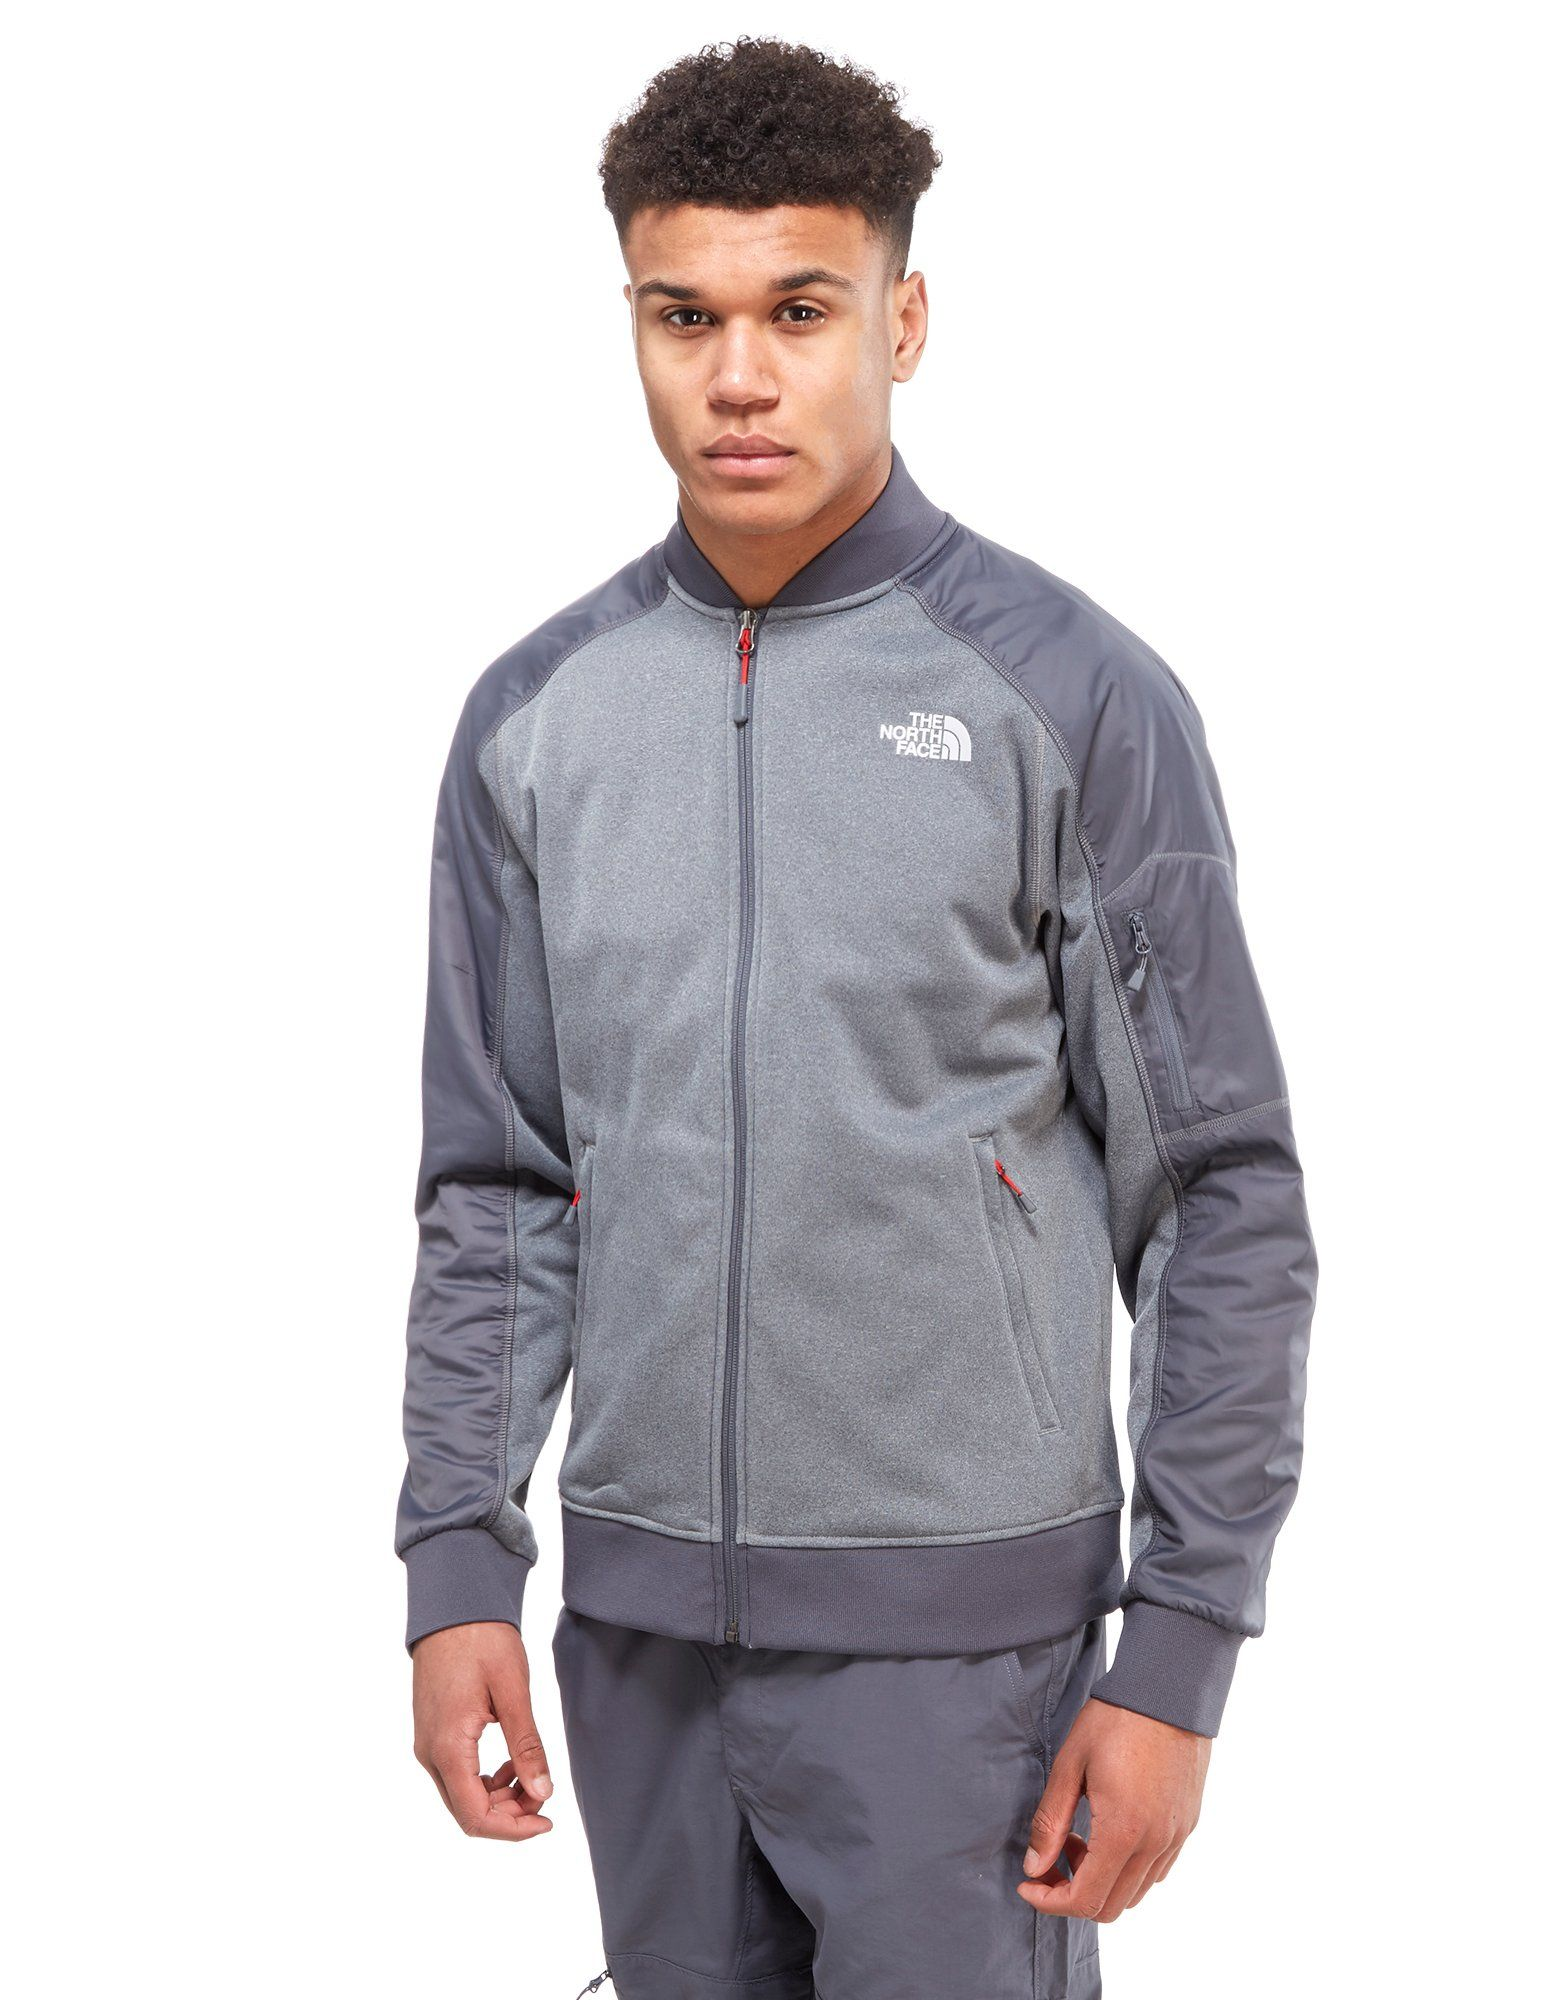 The North Face Tech Bomber Jacket | JD Sports